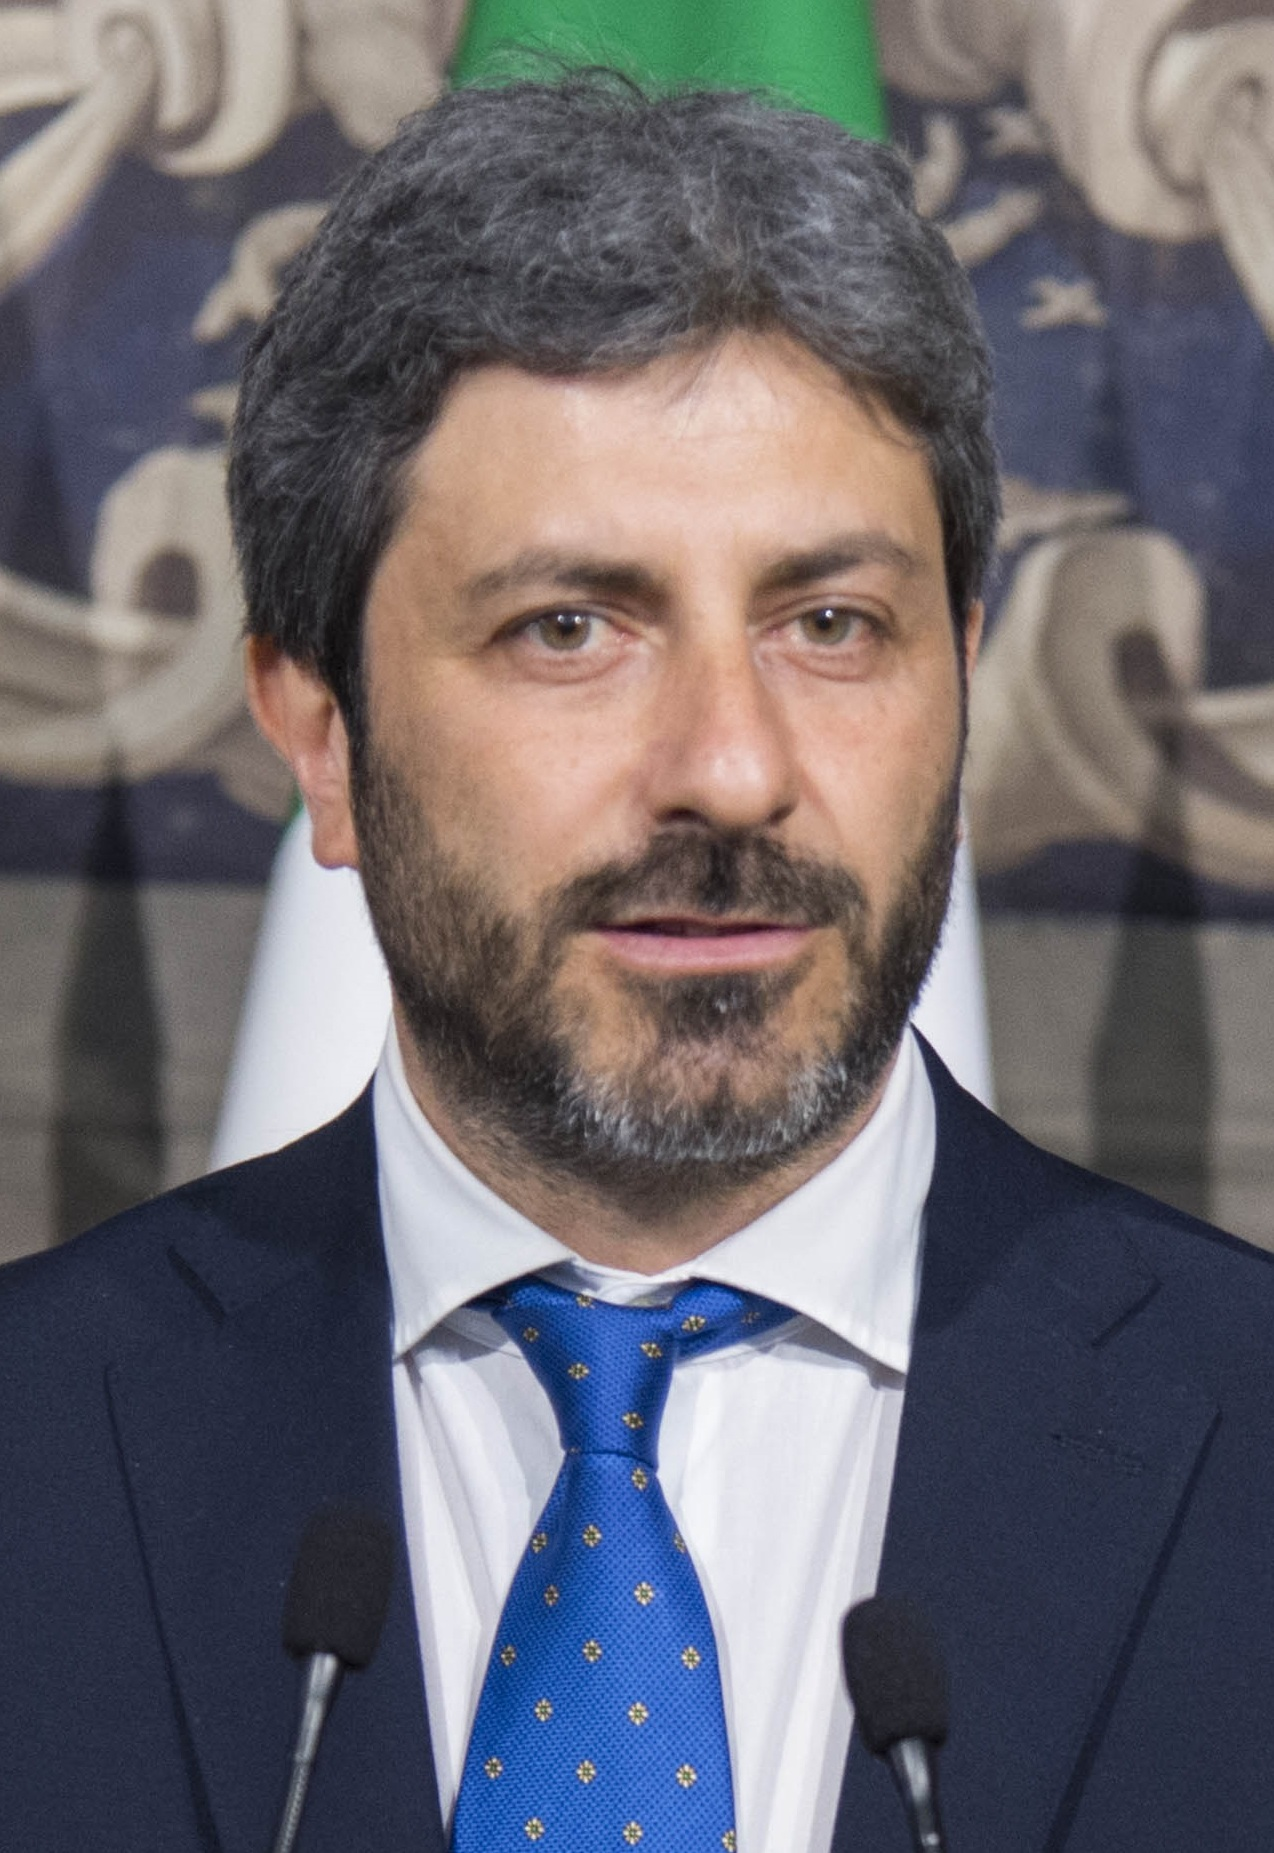 Roberto fico wikipedia for Presidente movimento 5 stelle